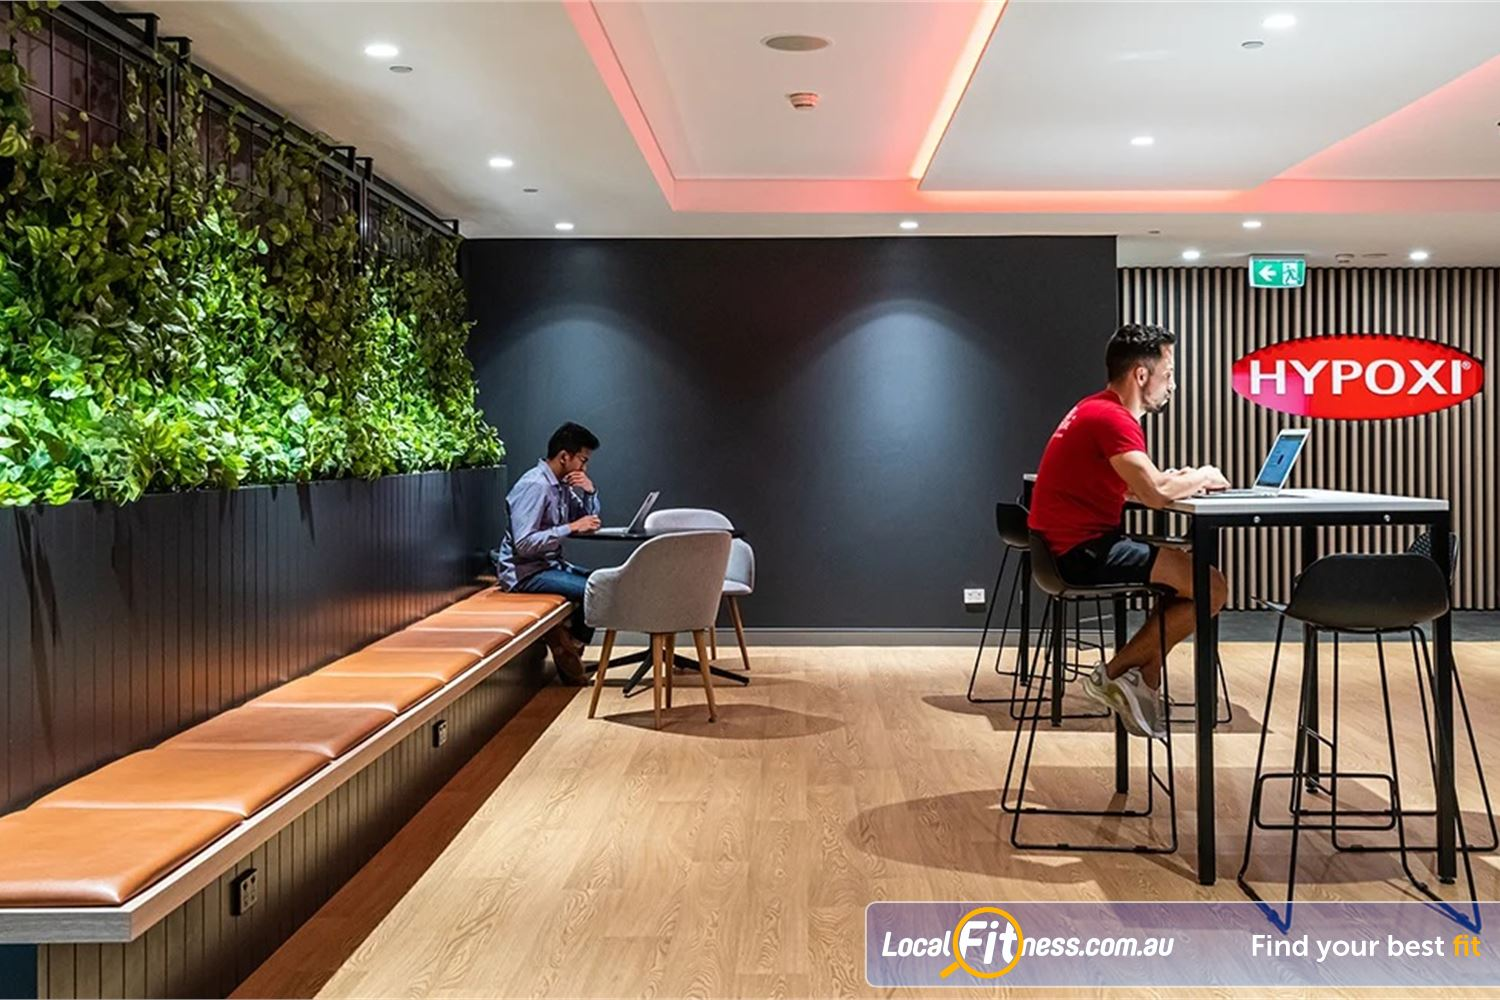 Fitness First Platinum Pitt St Sydney Comfortable seating in our members lounge.